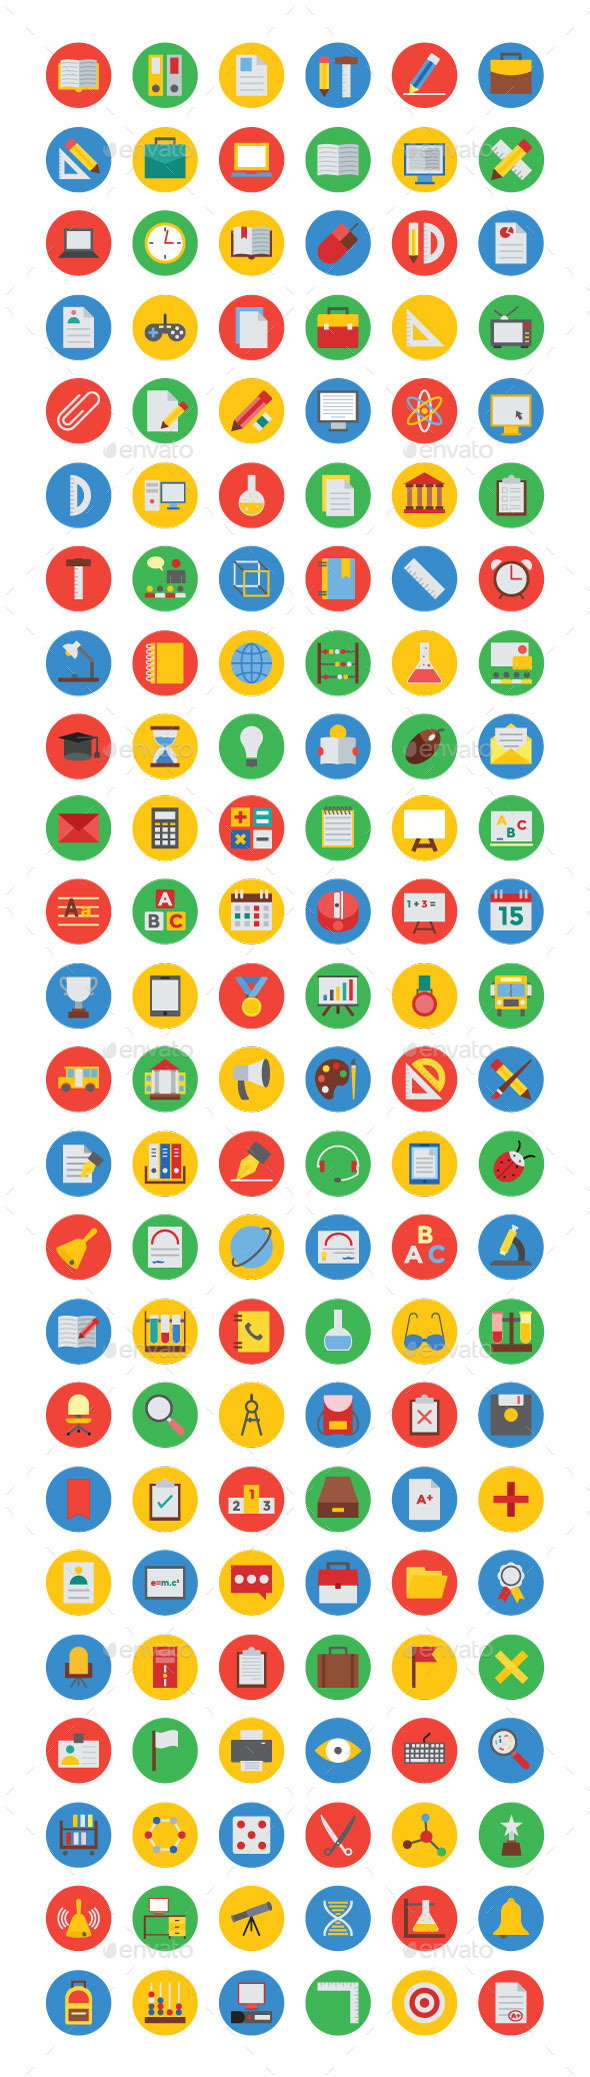 125+ Education Vector Icons - Icons